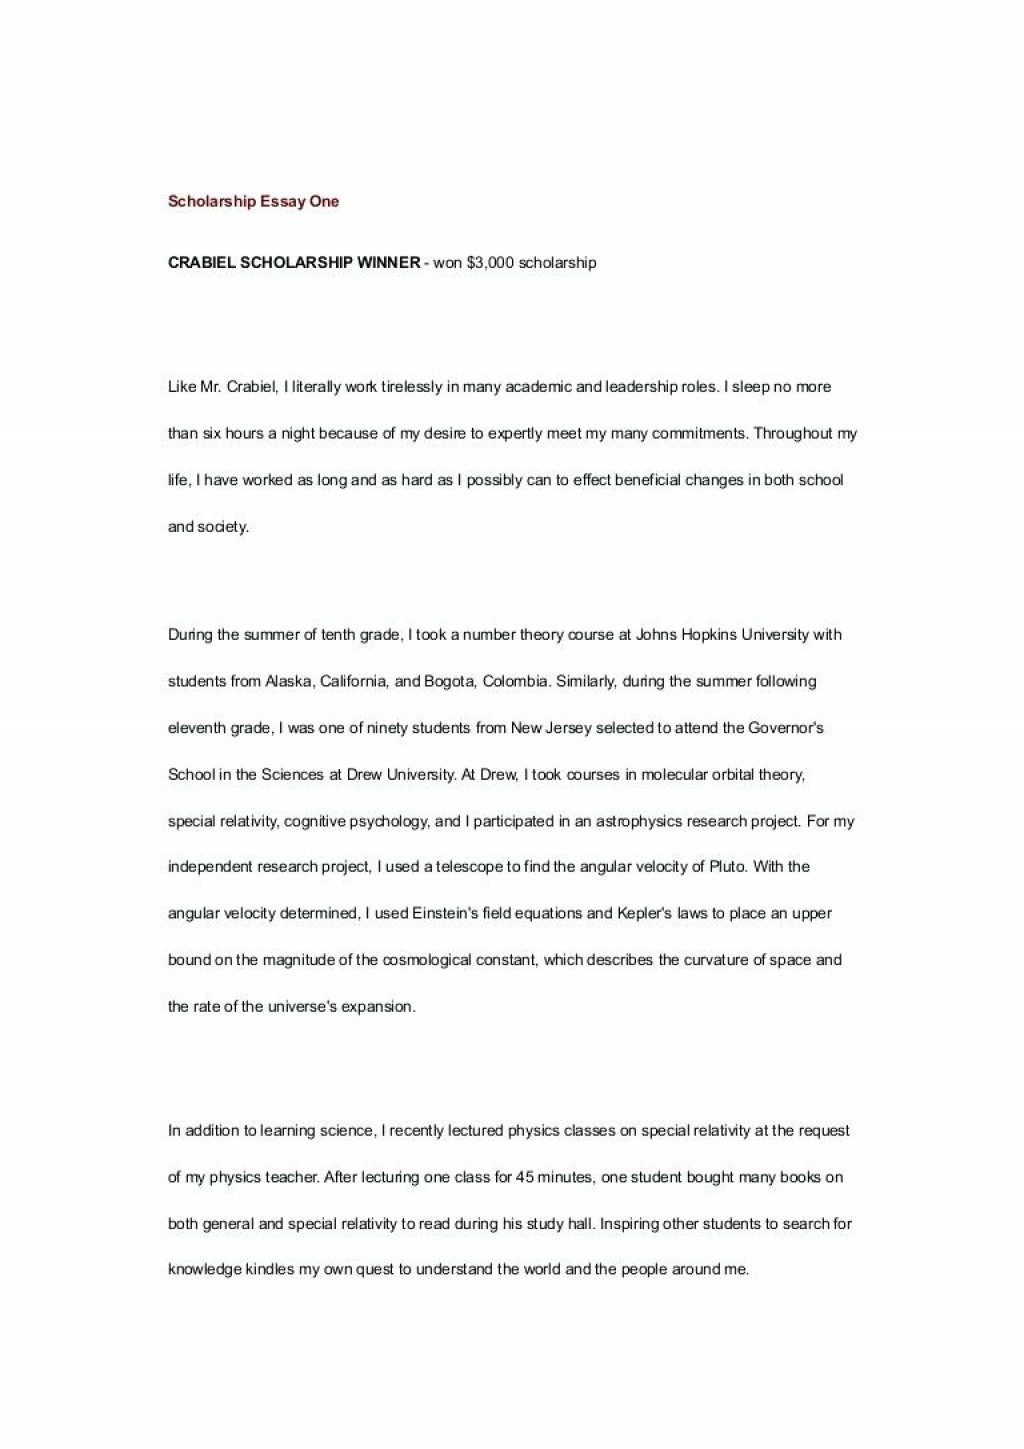 010 Essay Example No Scholarship College Application Template Legit Resume Cover Letter Thumbnail For Sample Wondrous Scholarships High School Seniors Niche Reddit Large